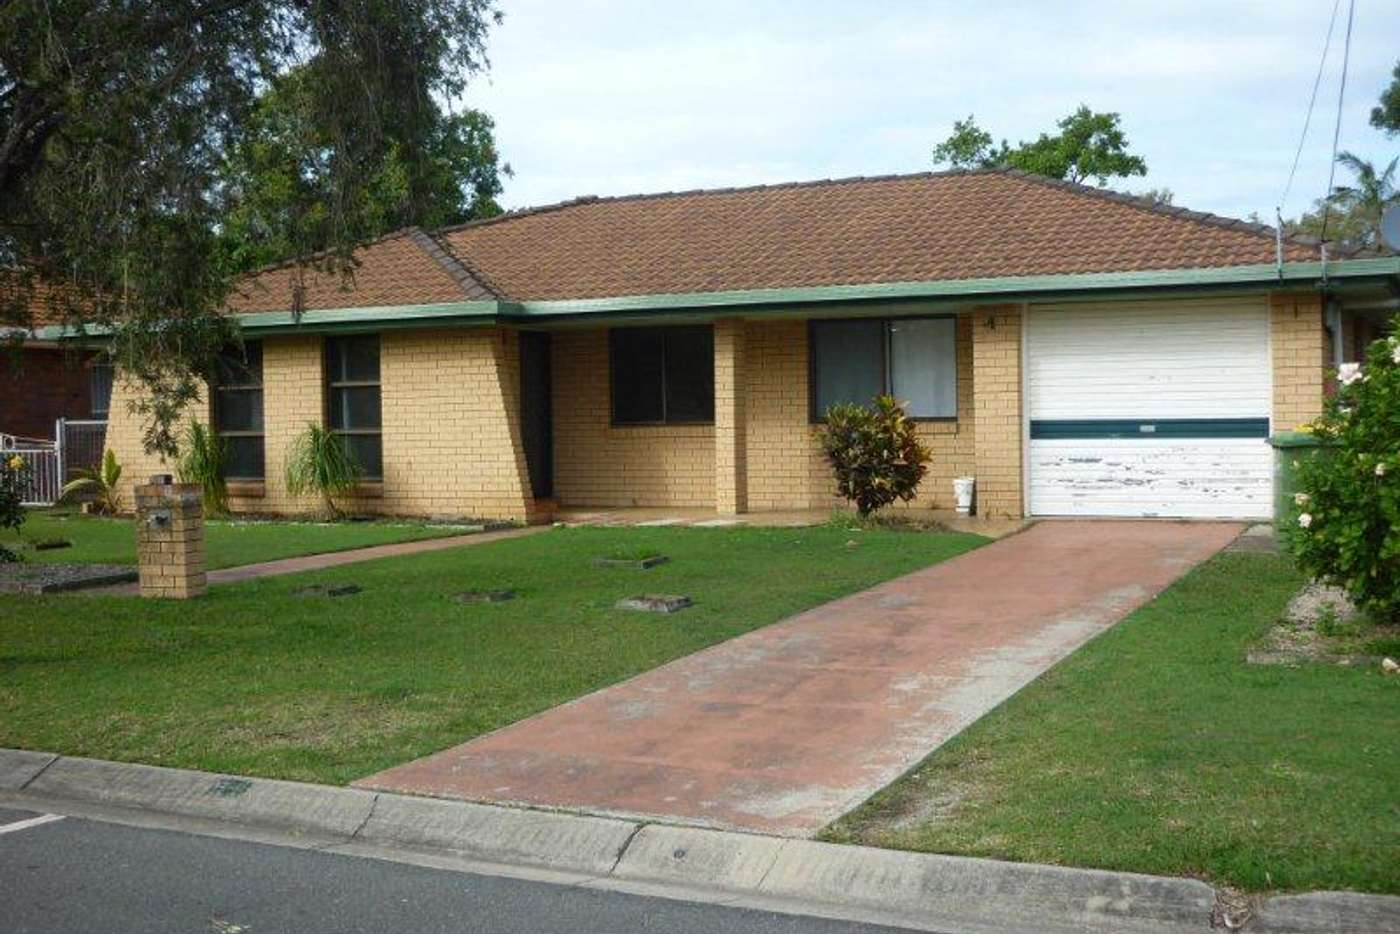 Main view of Homely house listing, 33 Marsala Street, Kippa-ring QLD 4021